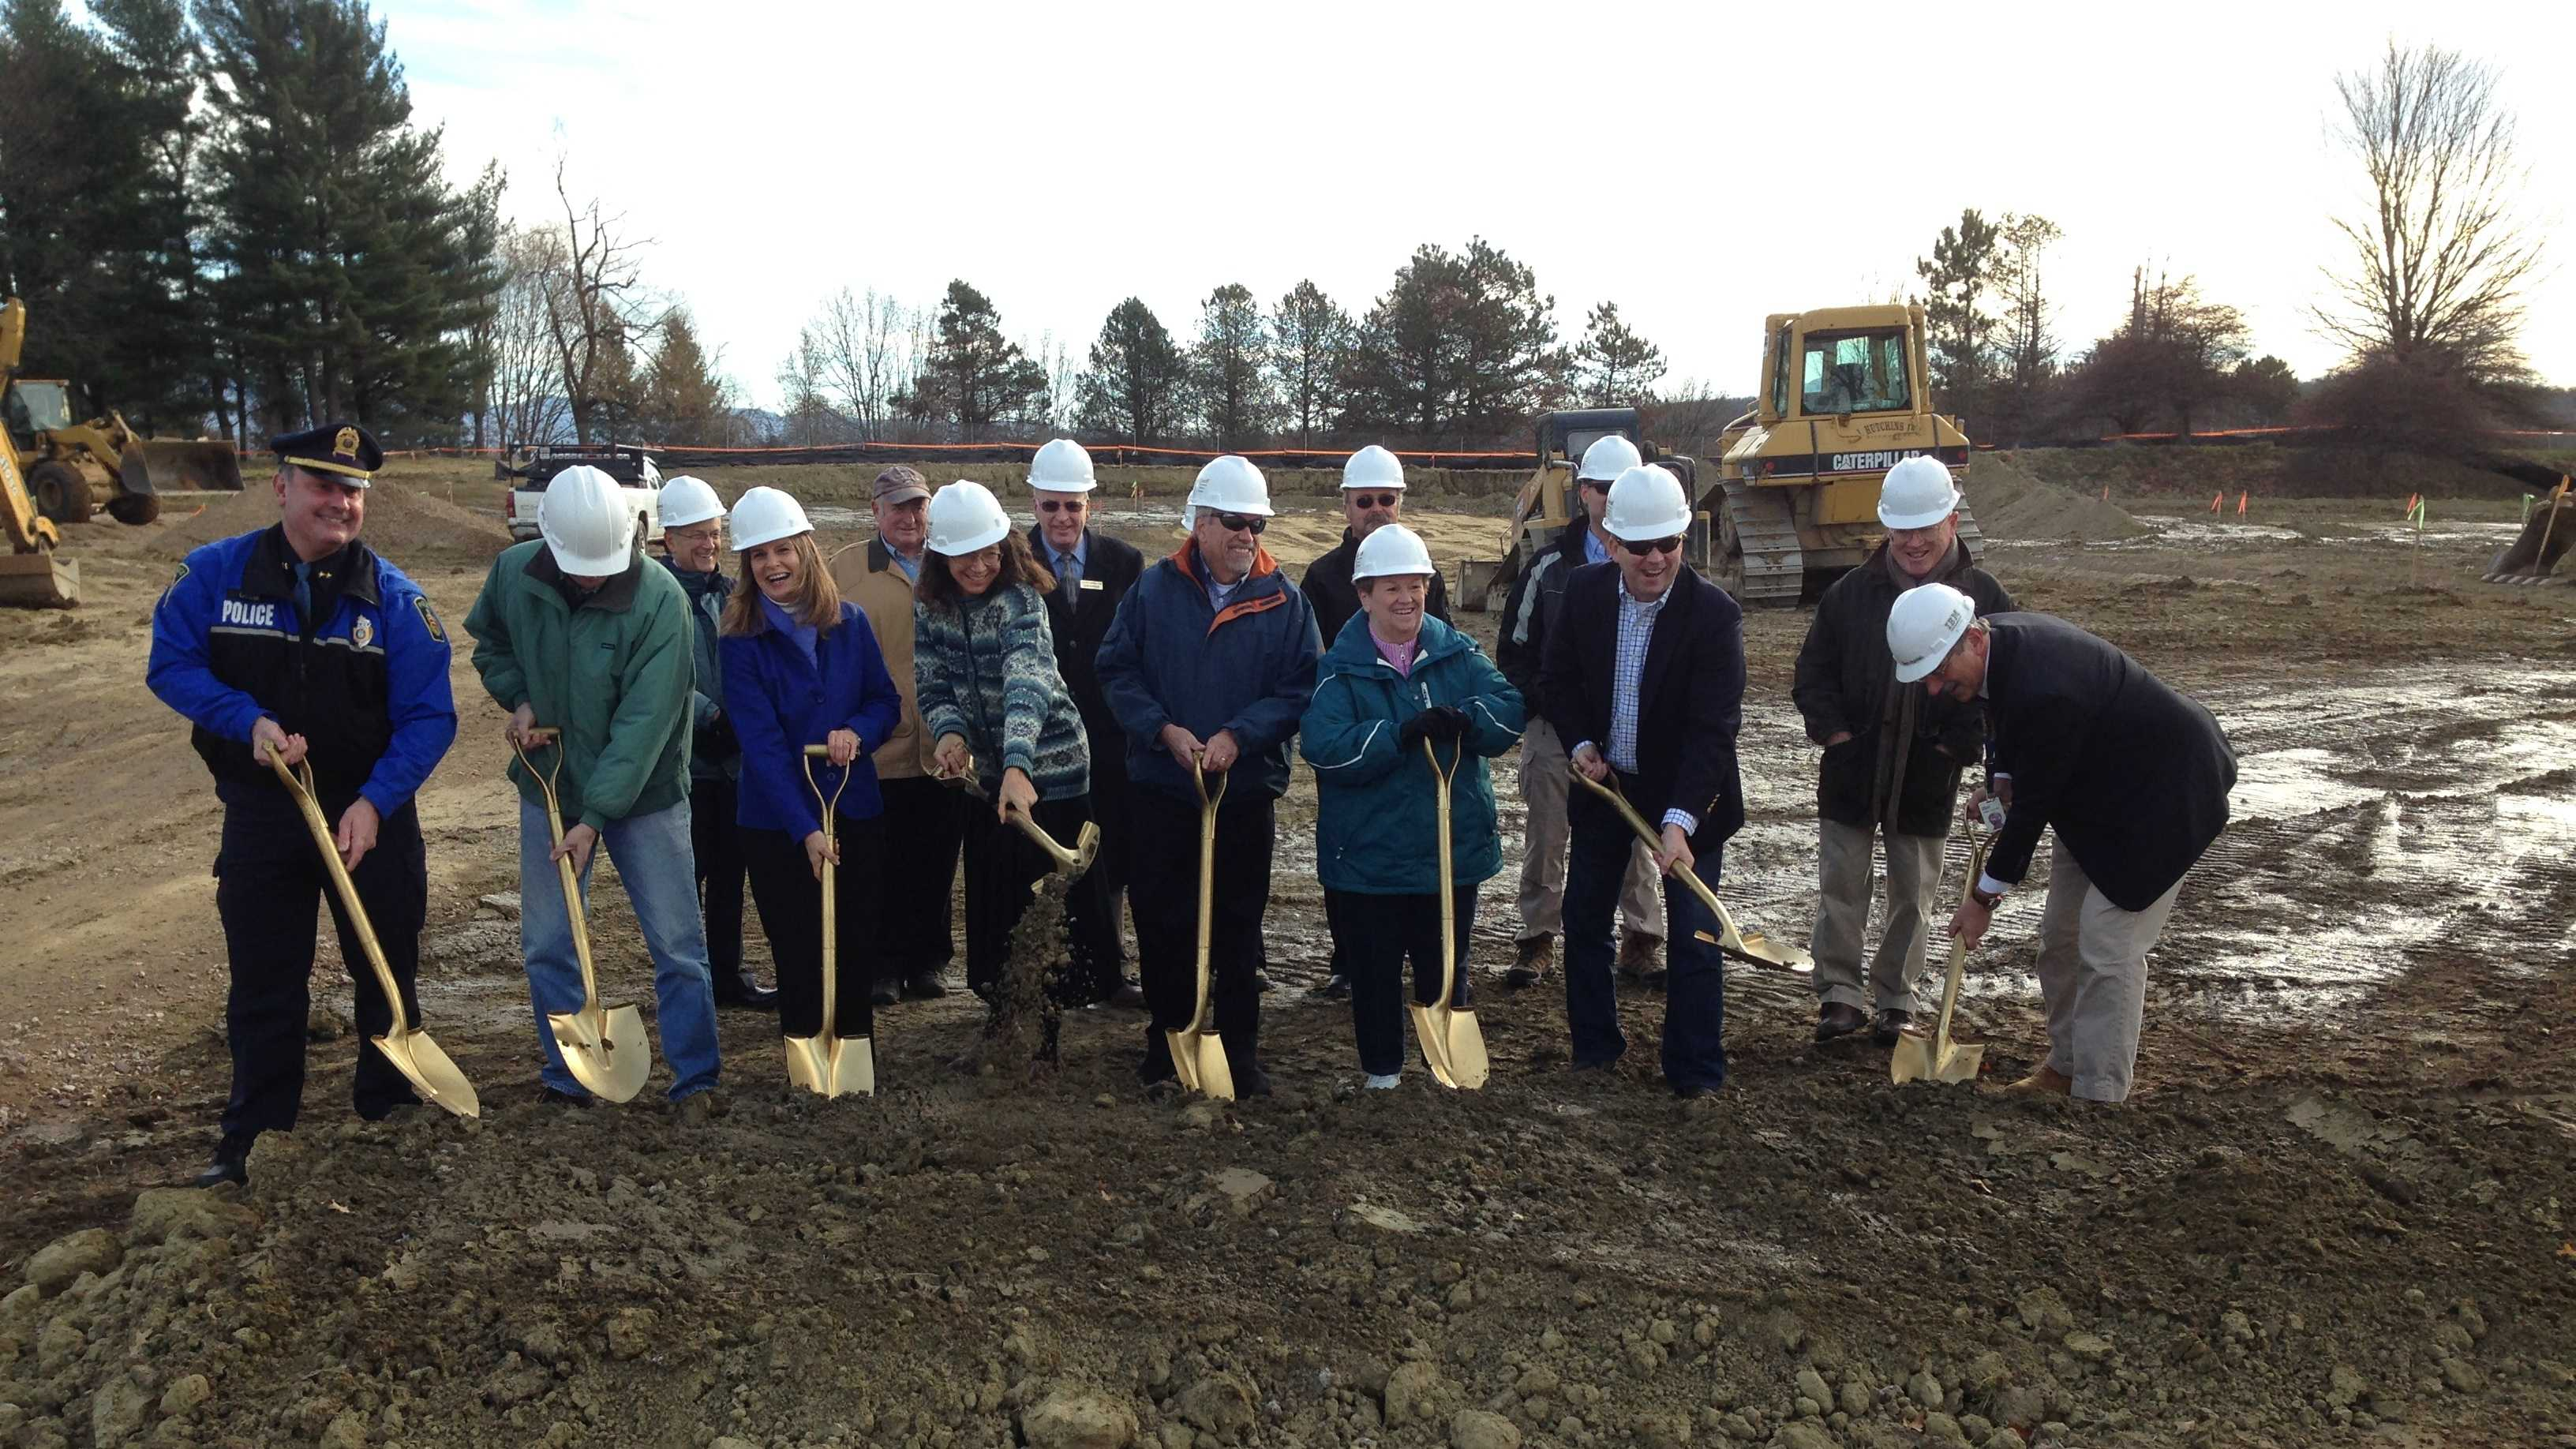 Essex leaders join Chief Brad Larose, left, for a ceremonial groundbreaking for a new police headquarters.